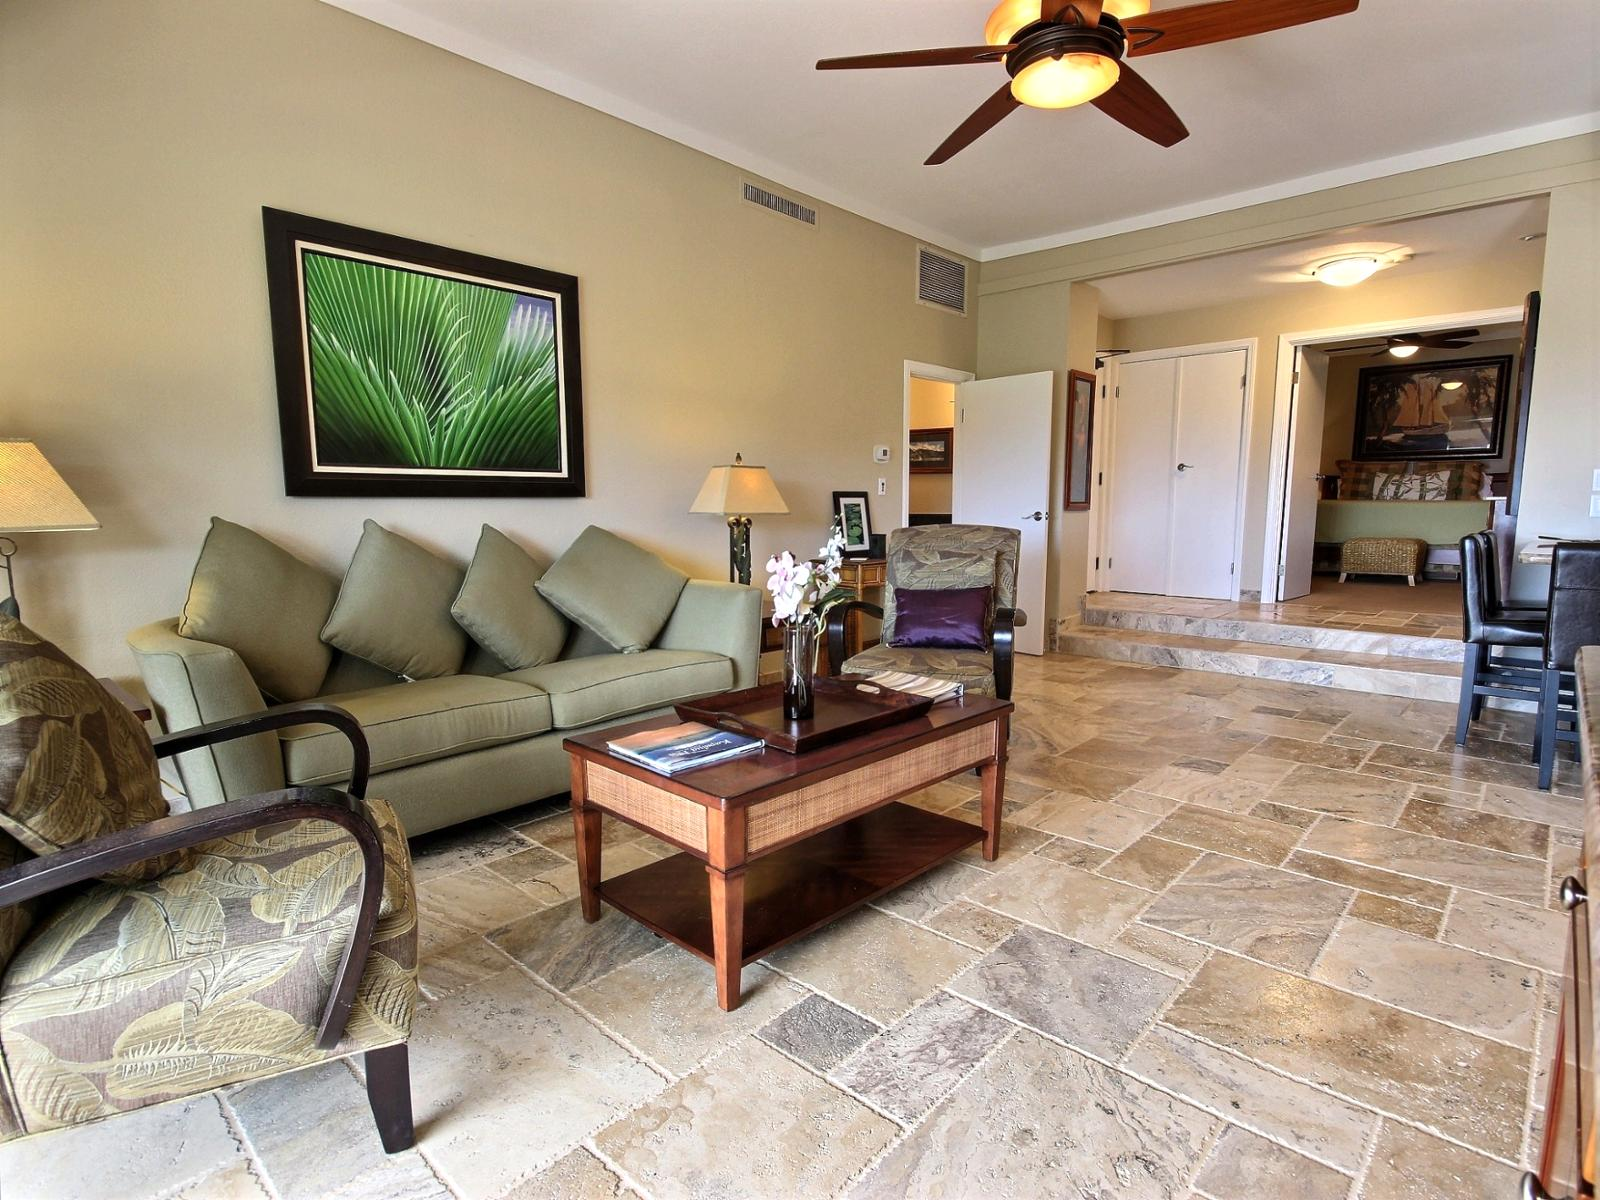 Living room with custom travertine tile